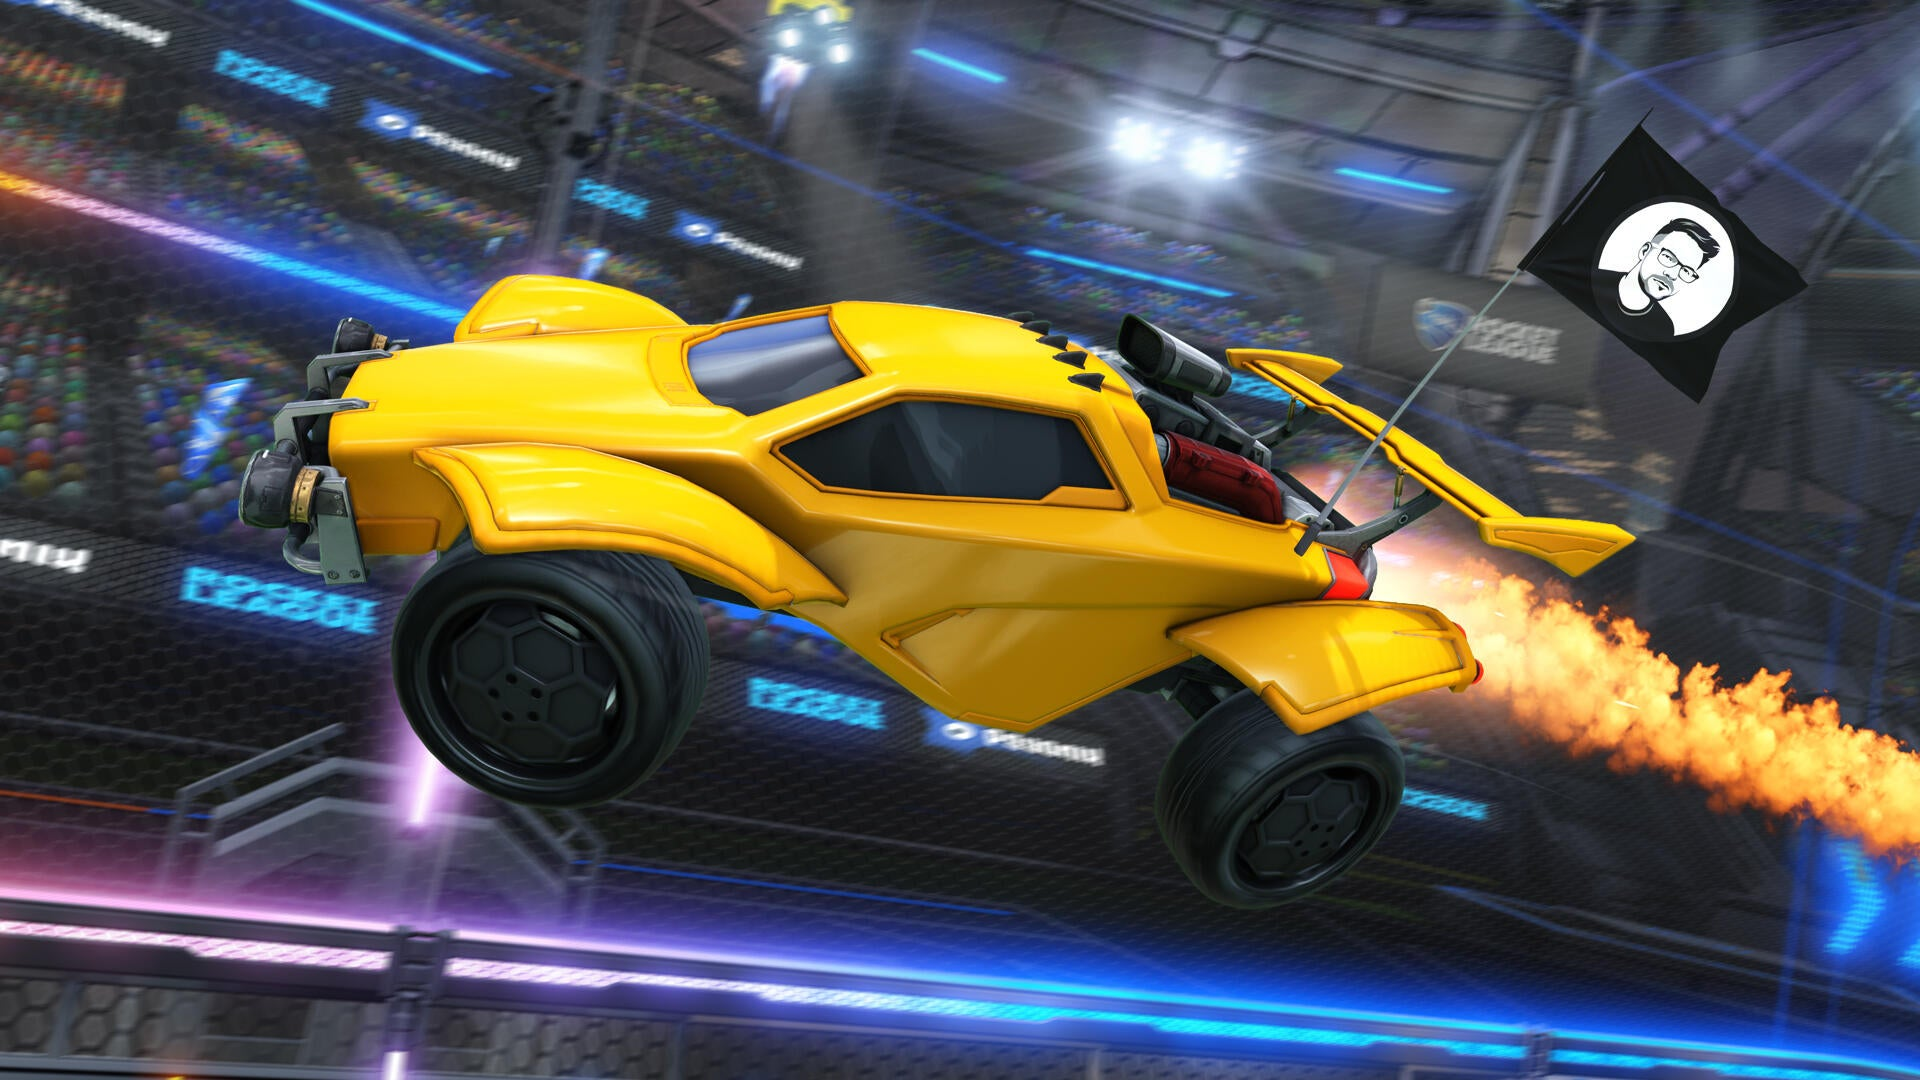 New Community Flags Coming To Rocket League Image